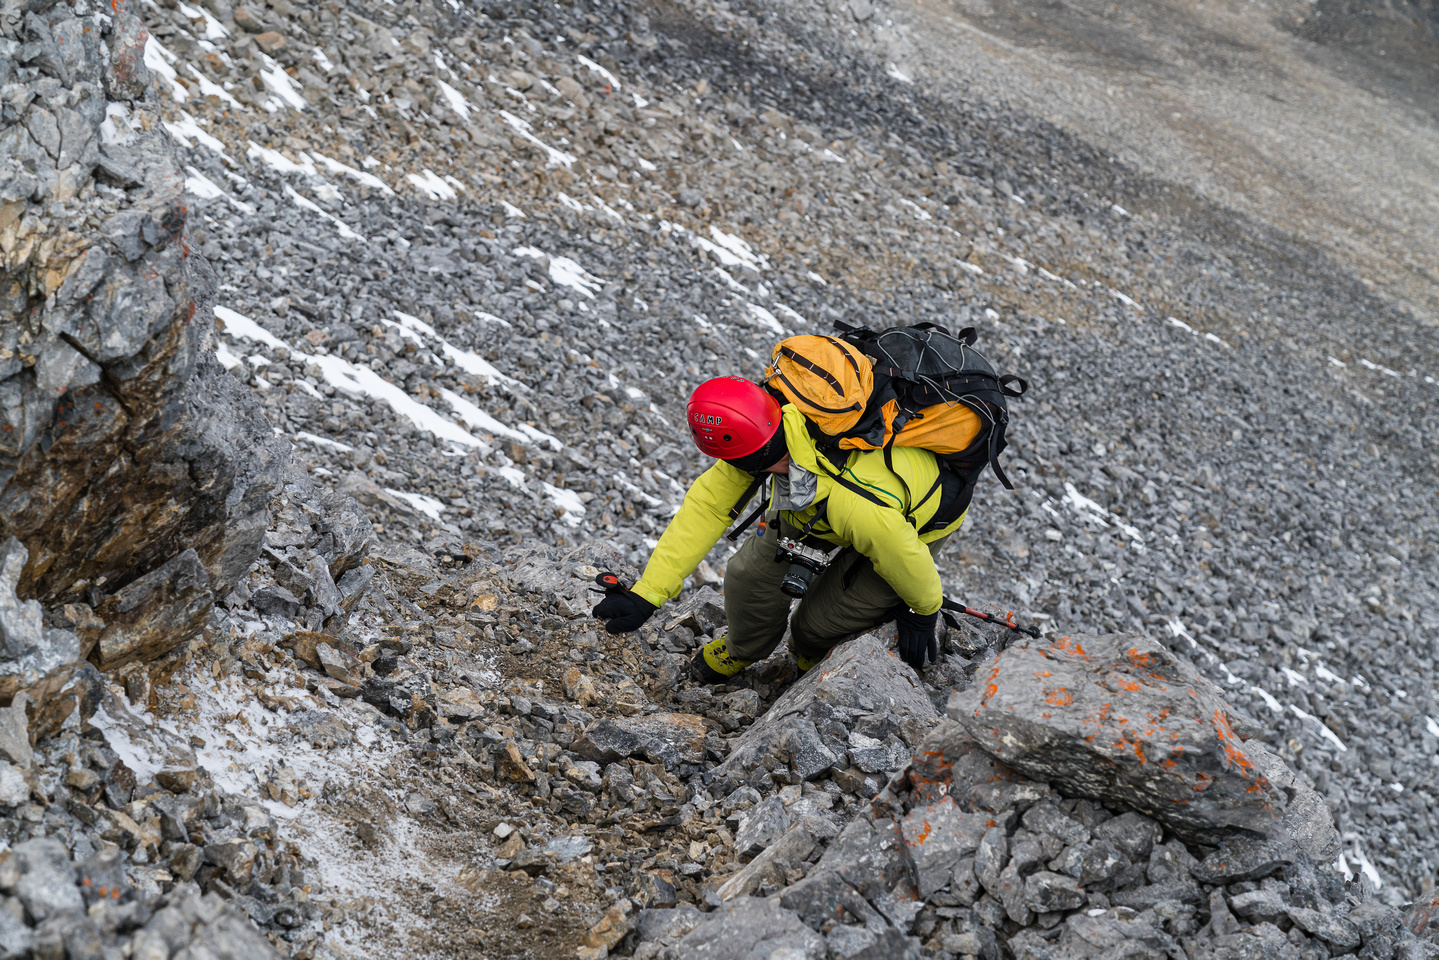 Wietse descends the moderate crux on Mount Lillian.